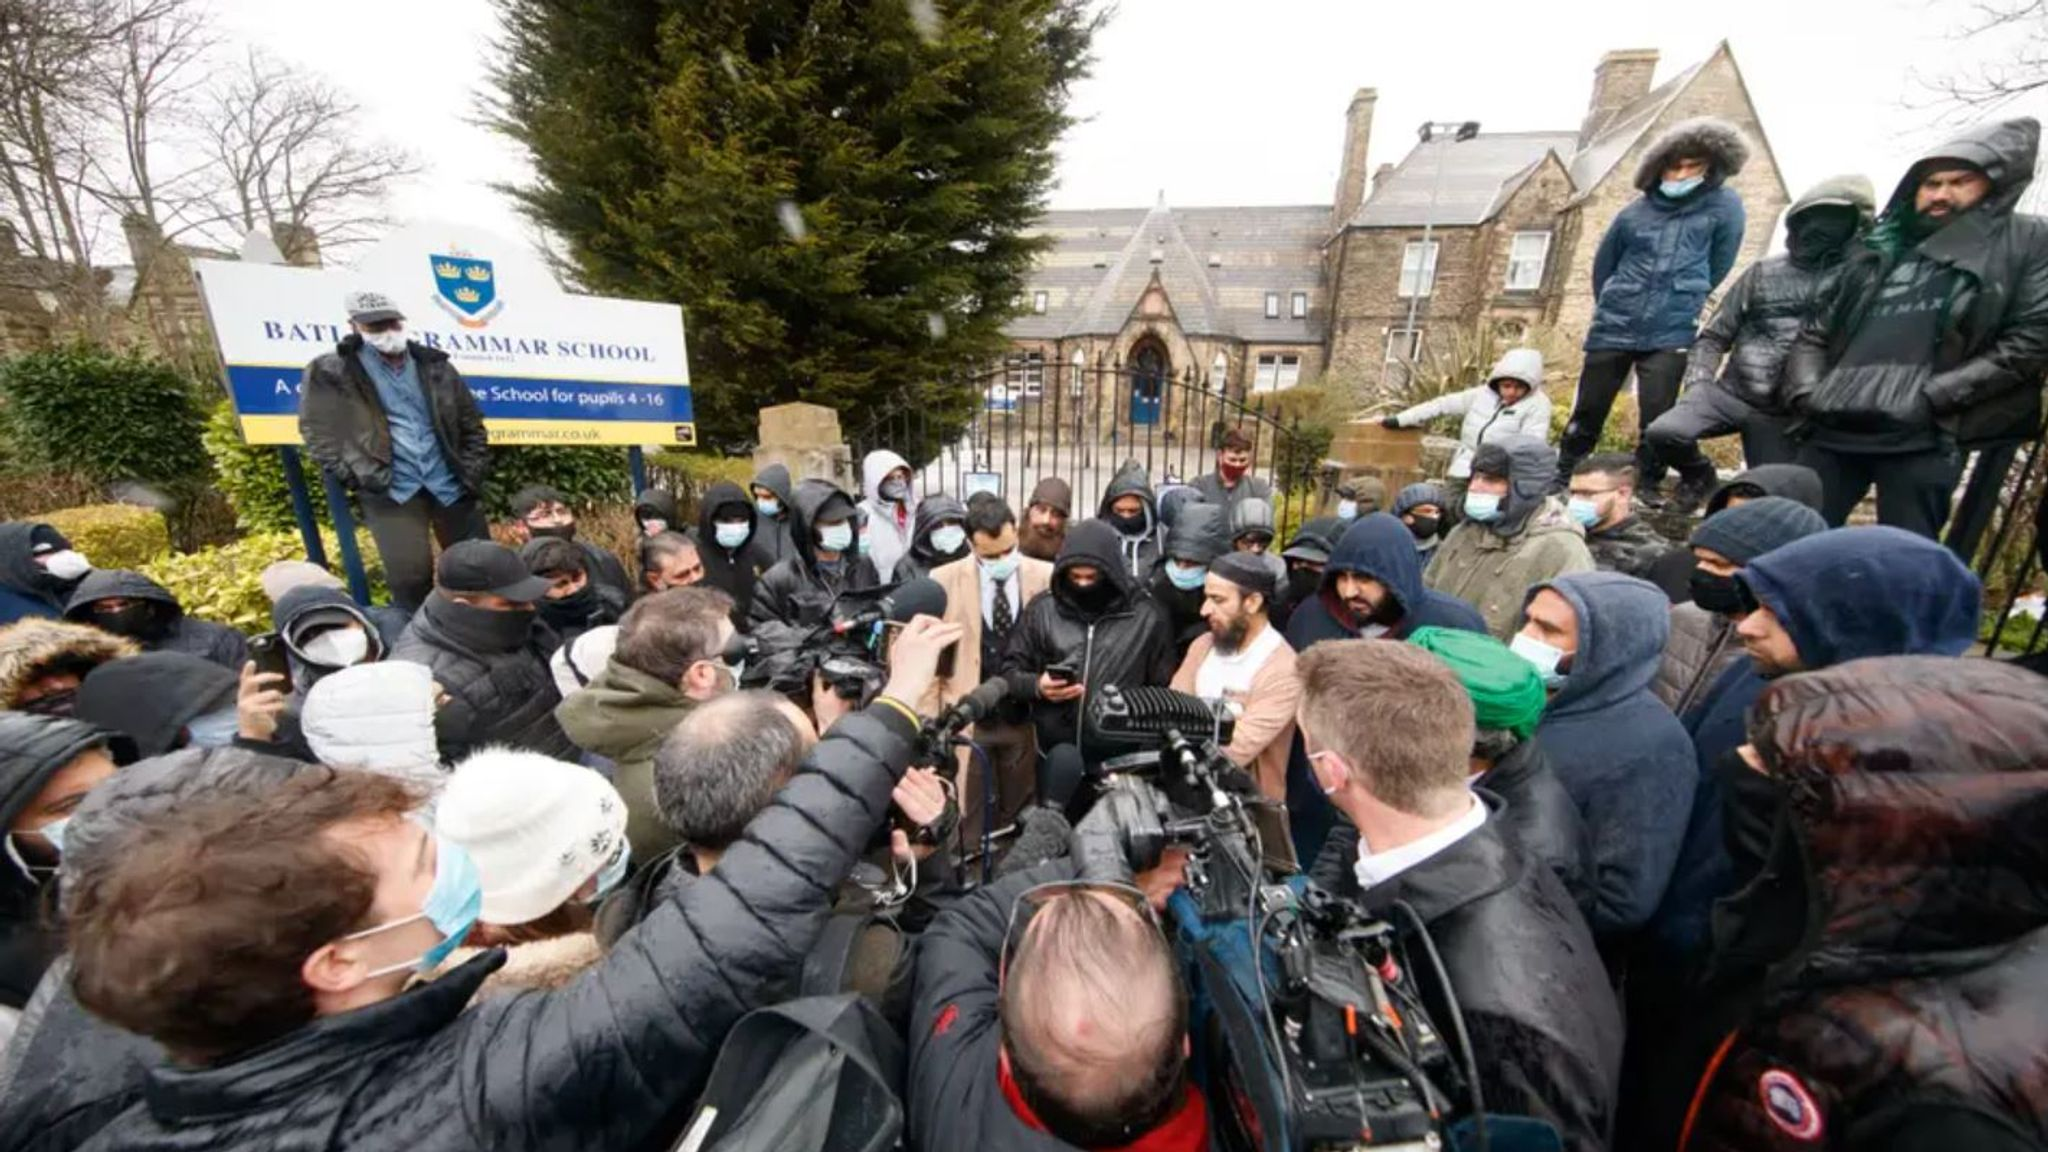 Batley Grammar School: More people gather over Mohammed image row - as  cabinet minister Robert Jenrick 'disturbed' by protests   UK News   Sky News